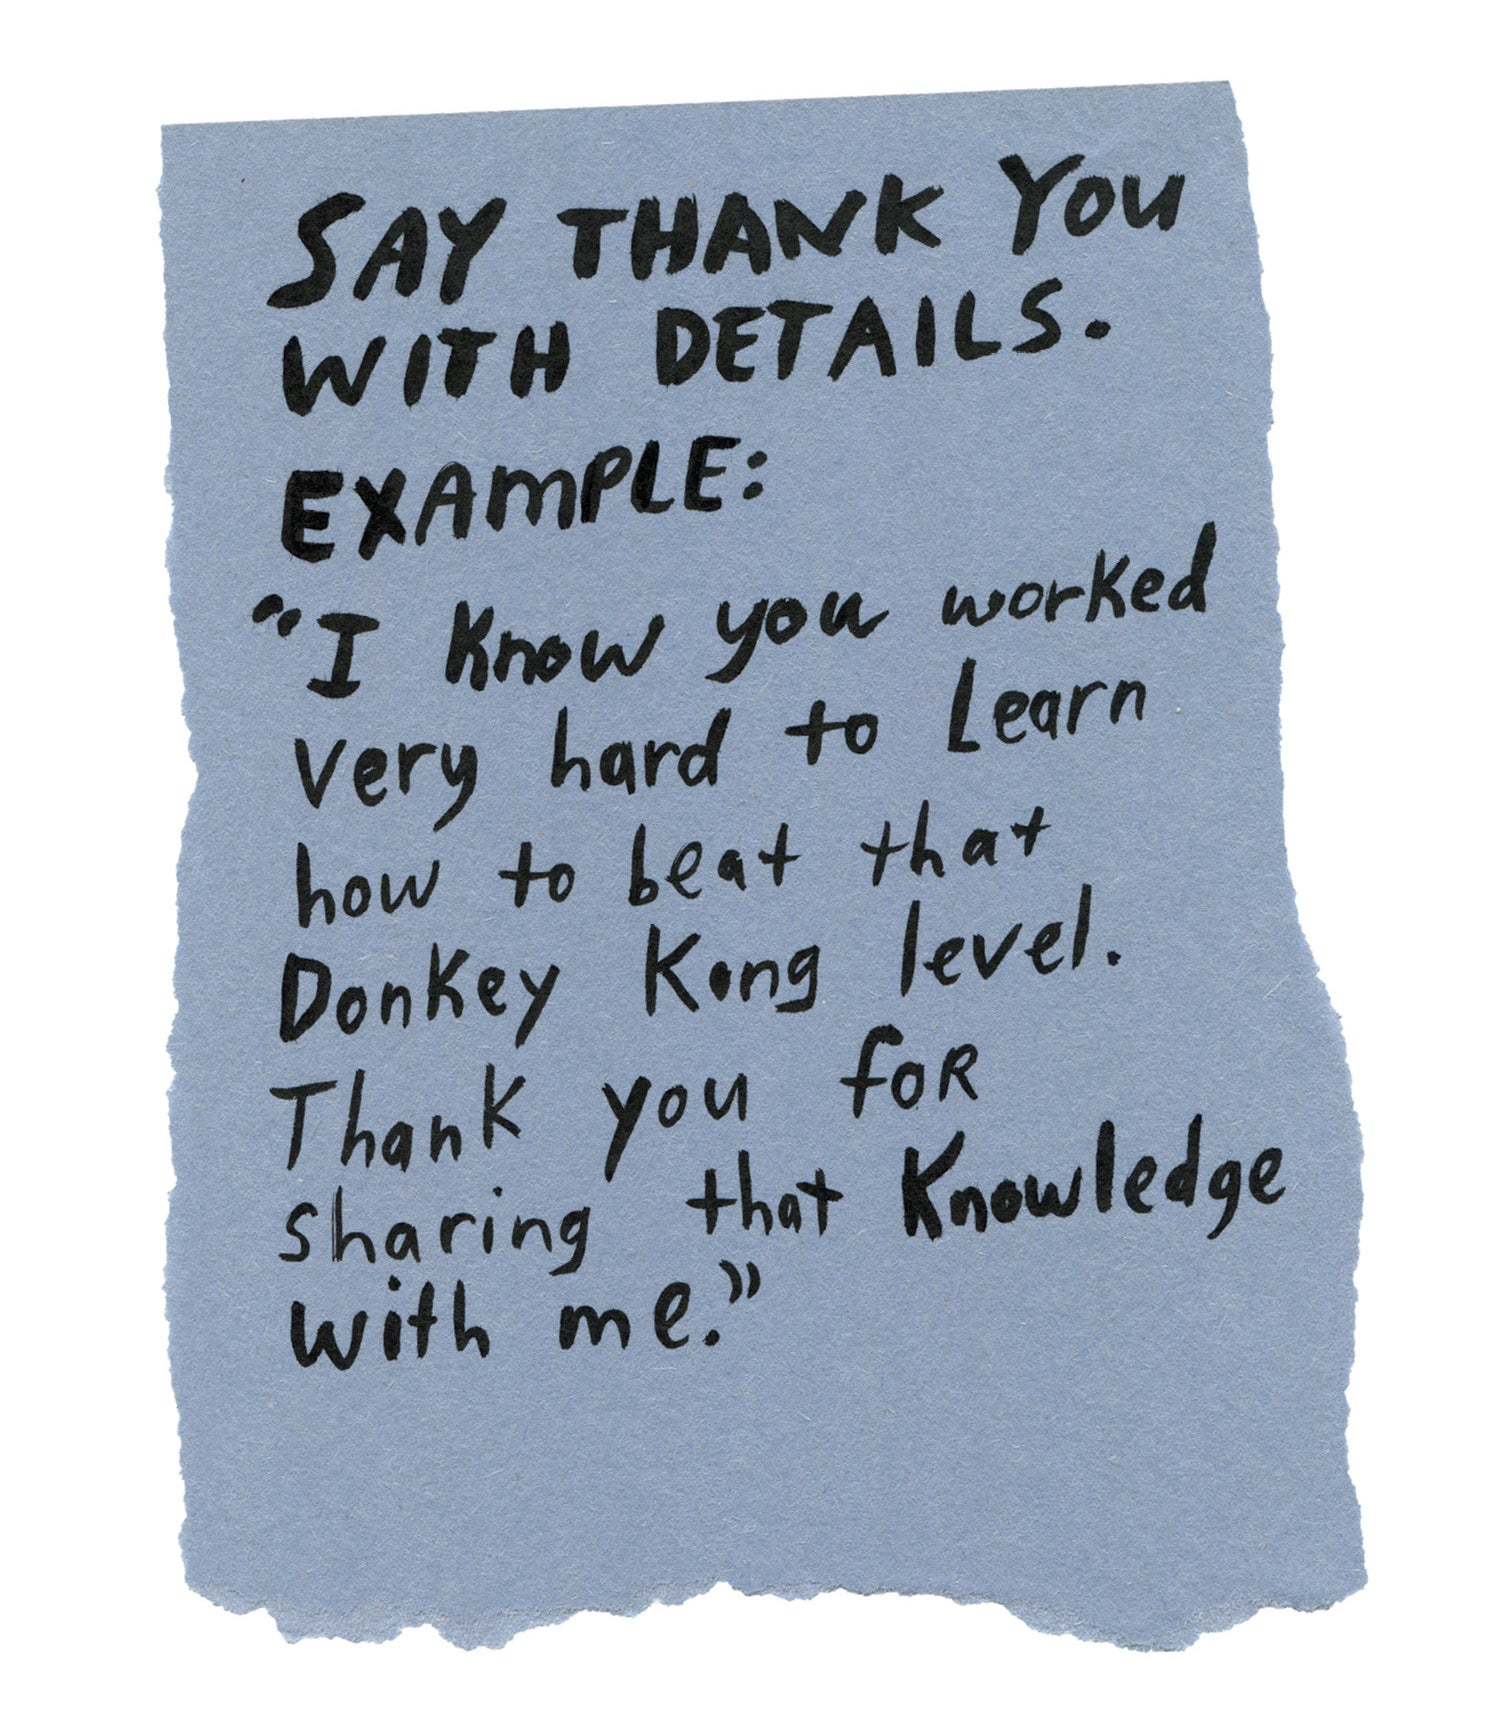 """Handwritten text on torn piece of colored paper: """"Say thank you with details. Example: I know you worked very hard to learn how to beat that Donkey Kong level. Thank you for sharing that knowledge with me."""""""